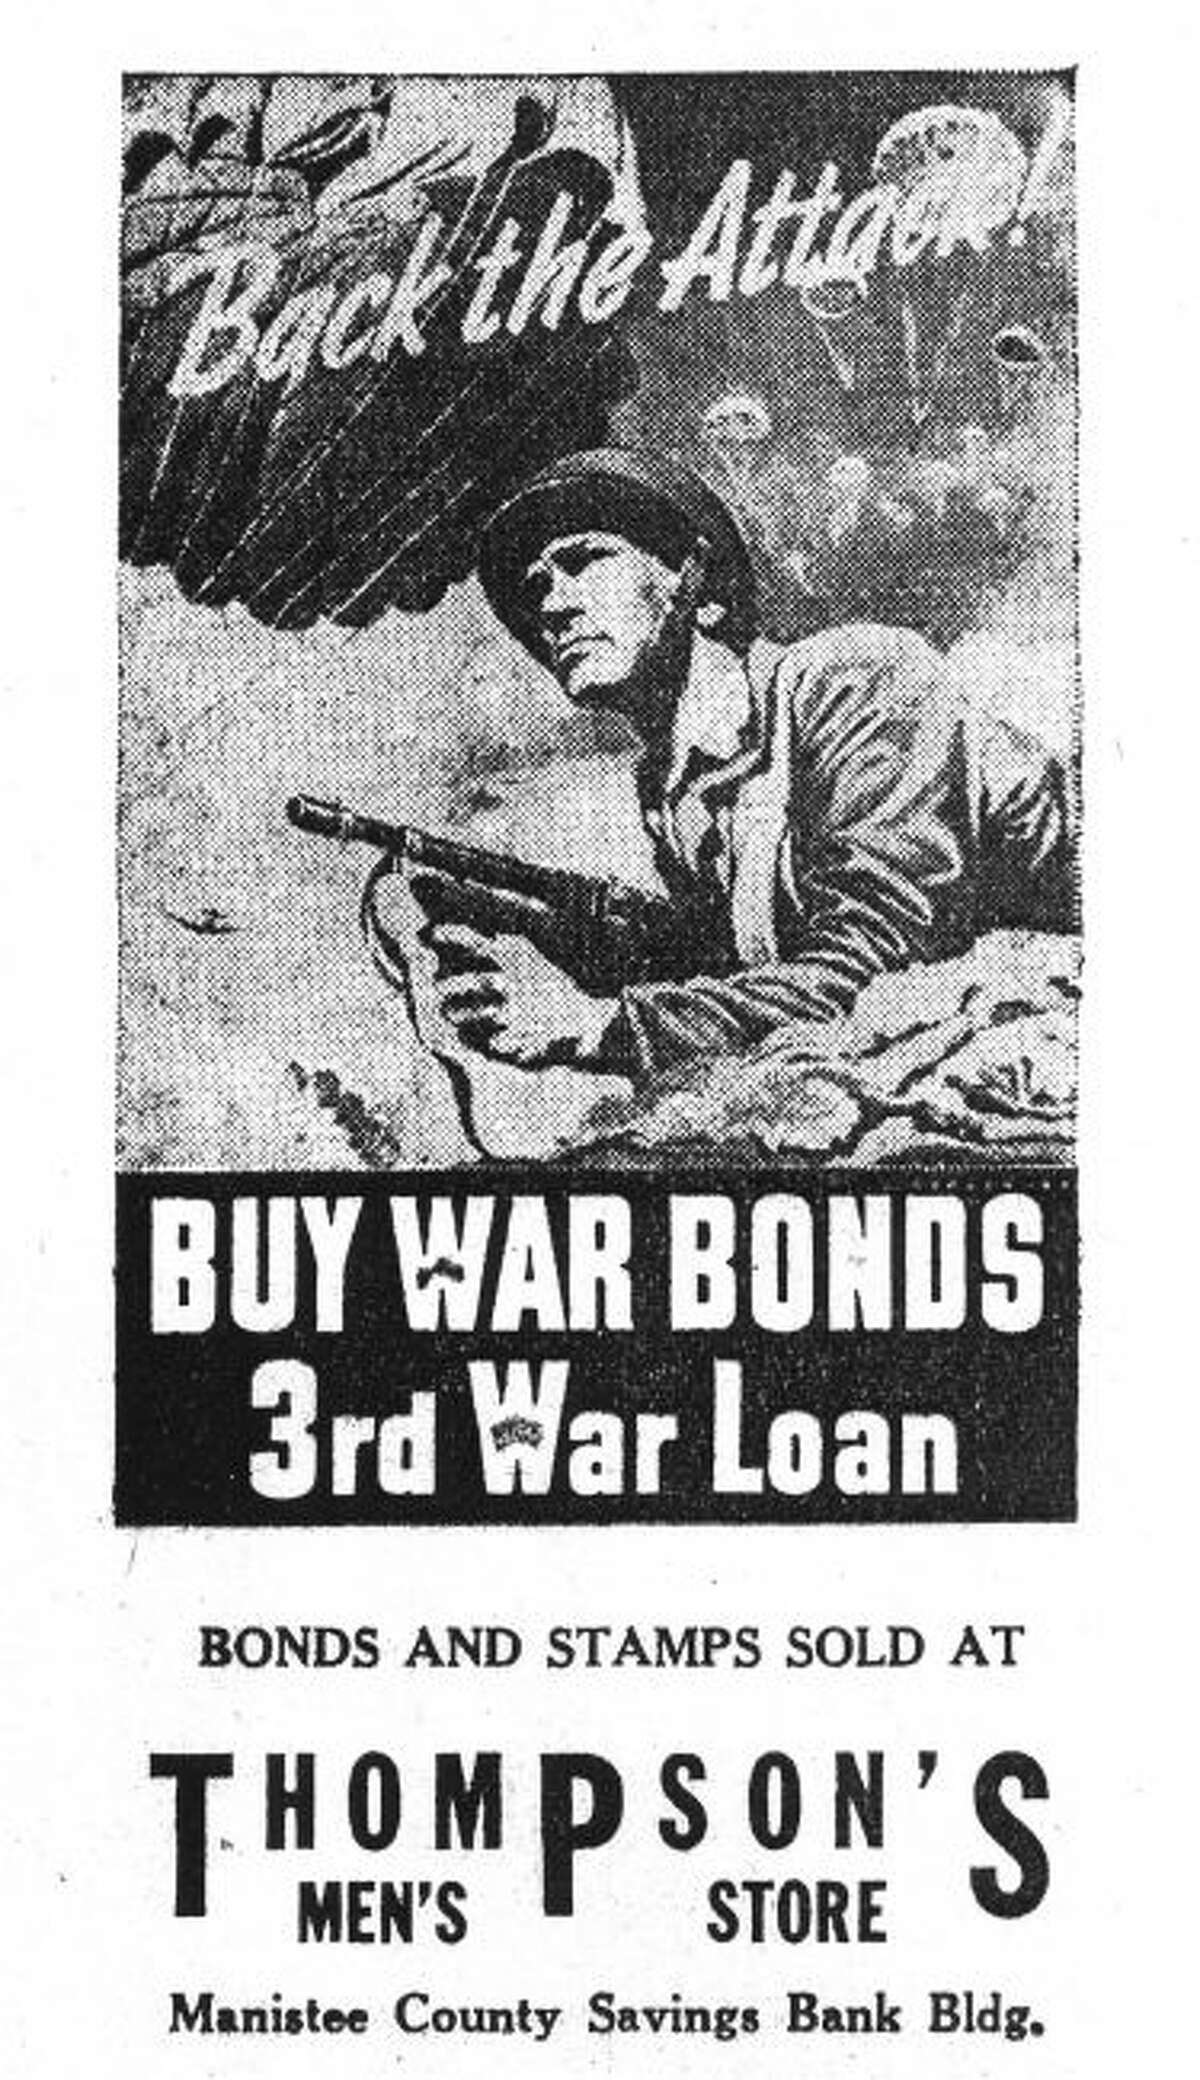 During World War II many area businesses in Manistee took out advertisements in the Manistee News Advocate to promote the sale of war bonds.